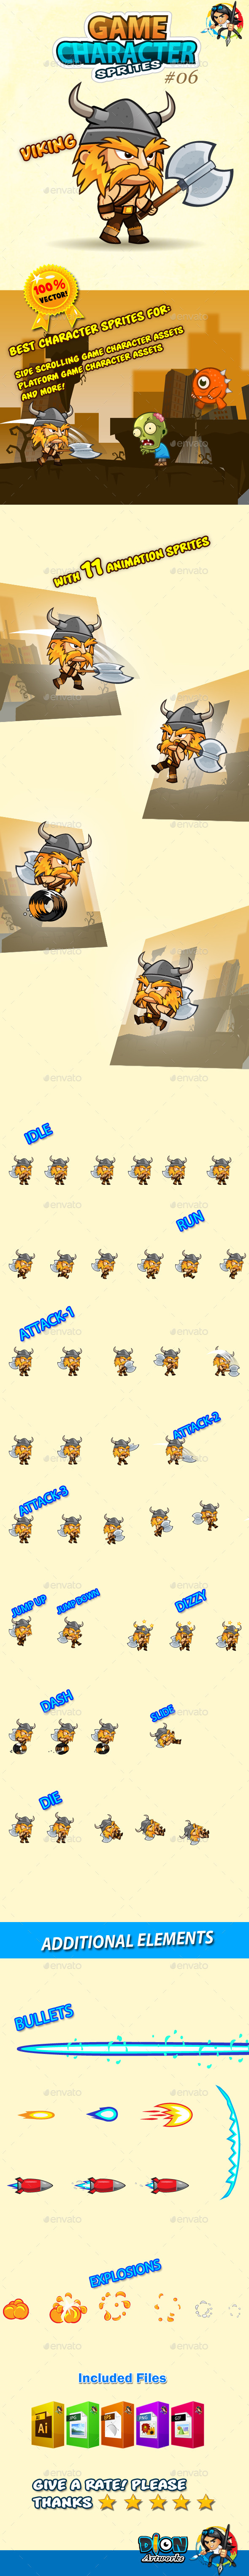 GraphicRiver Viking Character Sprites 06 10708118